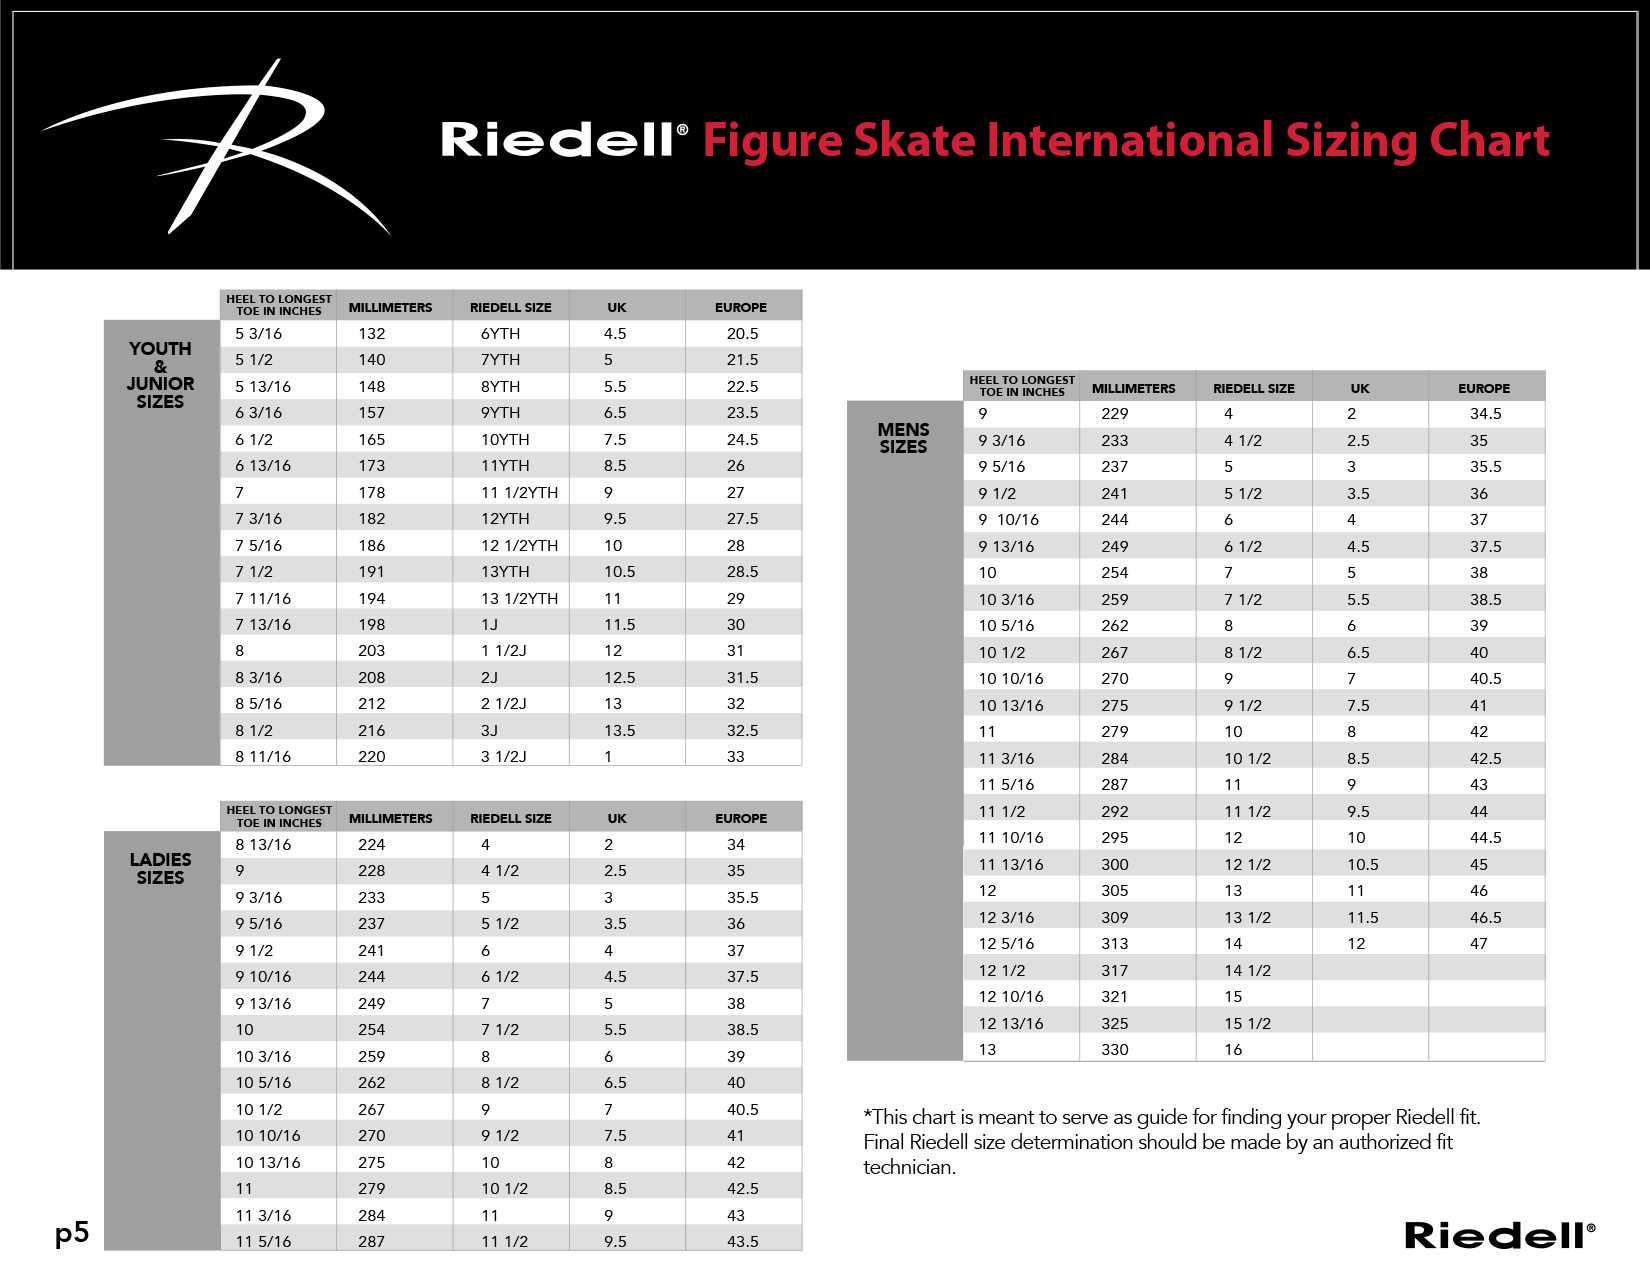 riedell-ice-sizing-guide.jpg